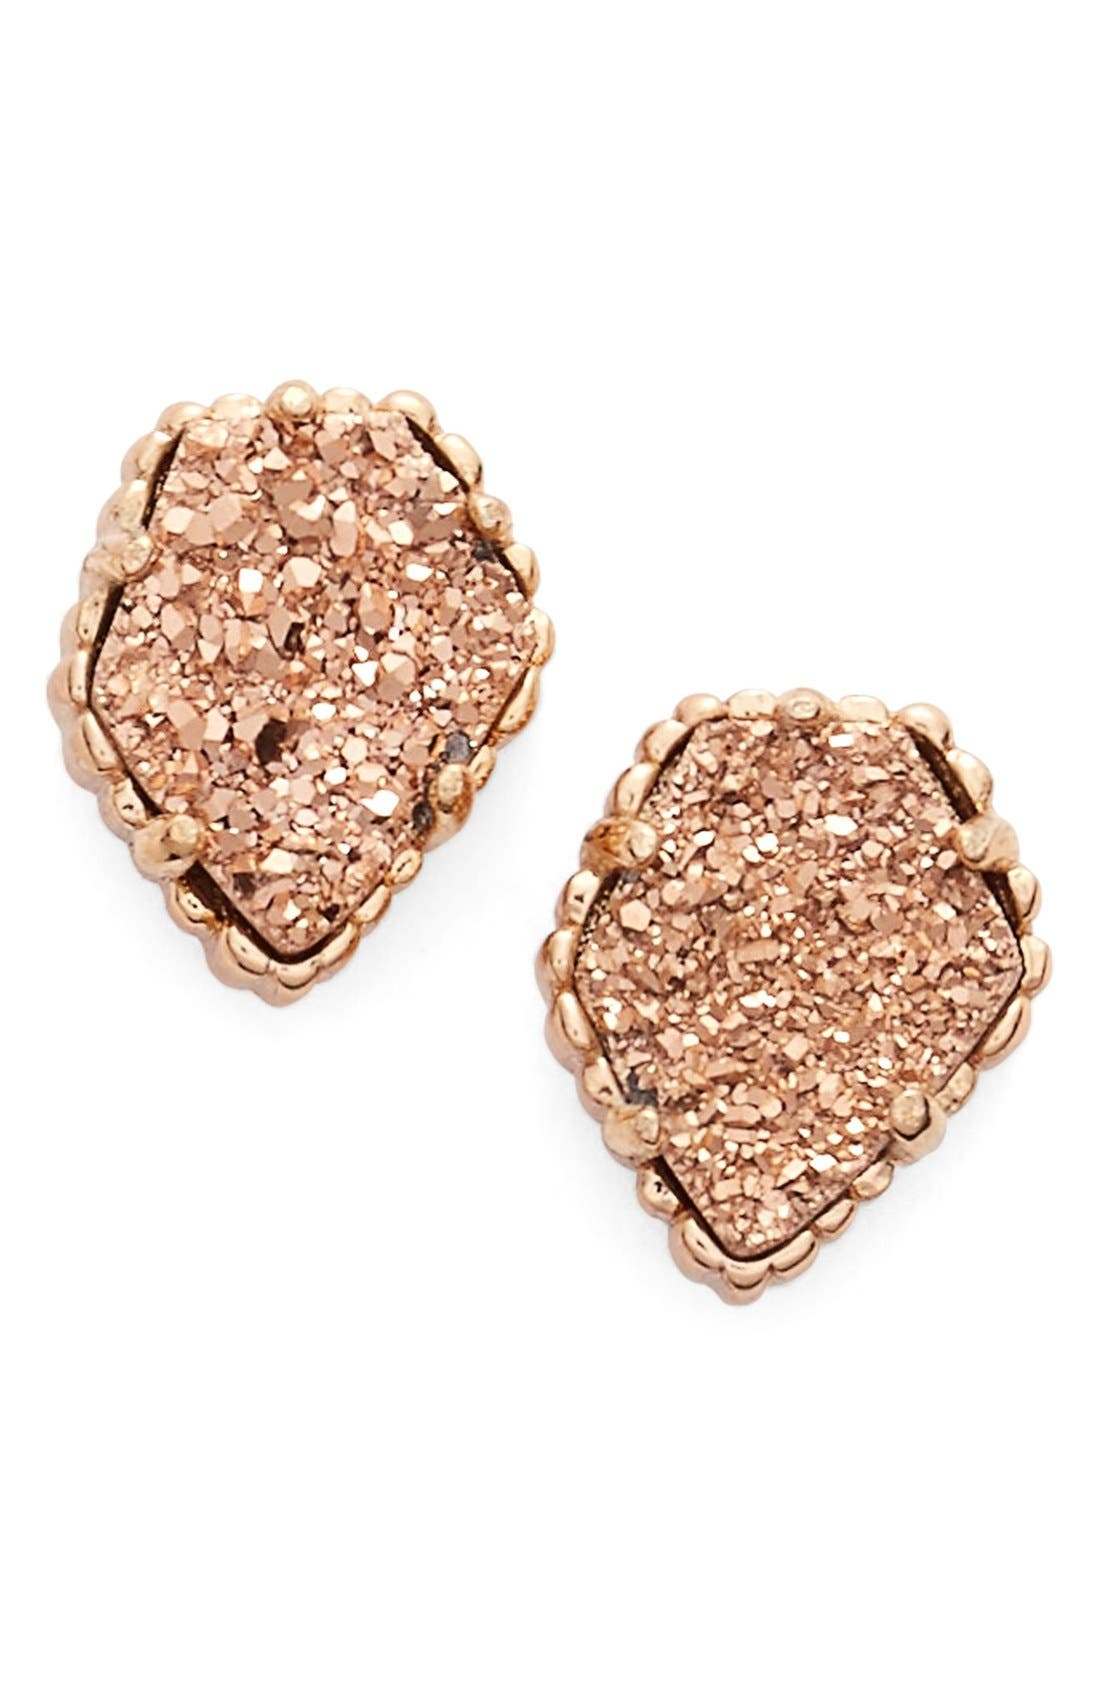 Tessa Stone Stud Earrings,                             Main thumbnail 1, color,                             Rose Drusy/ Rose Gold